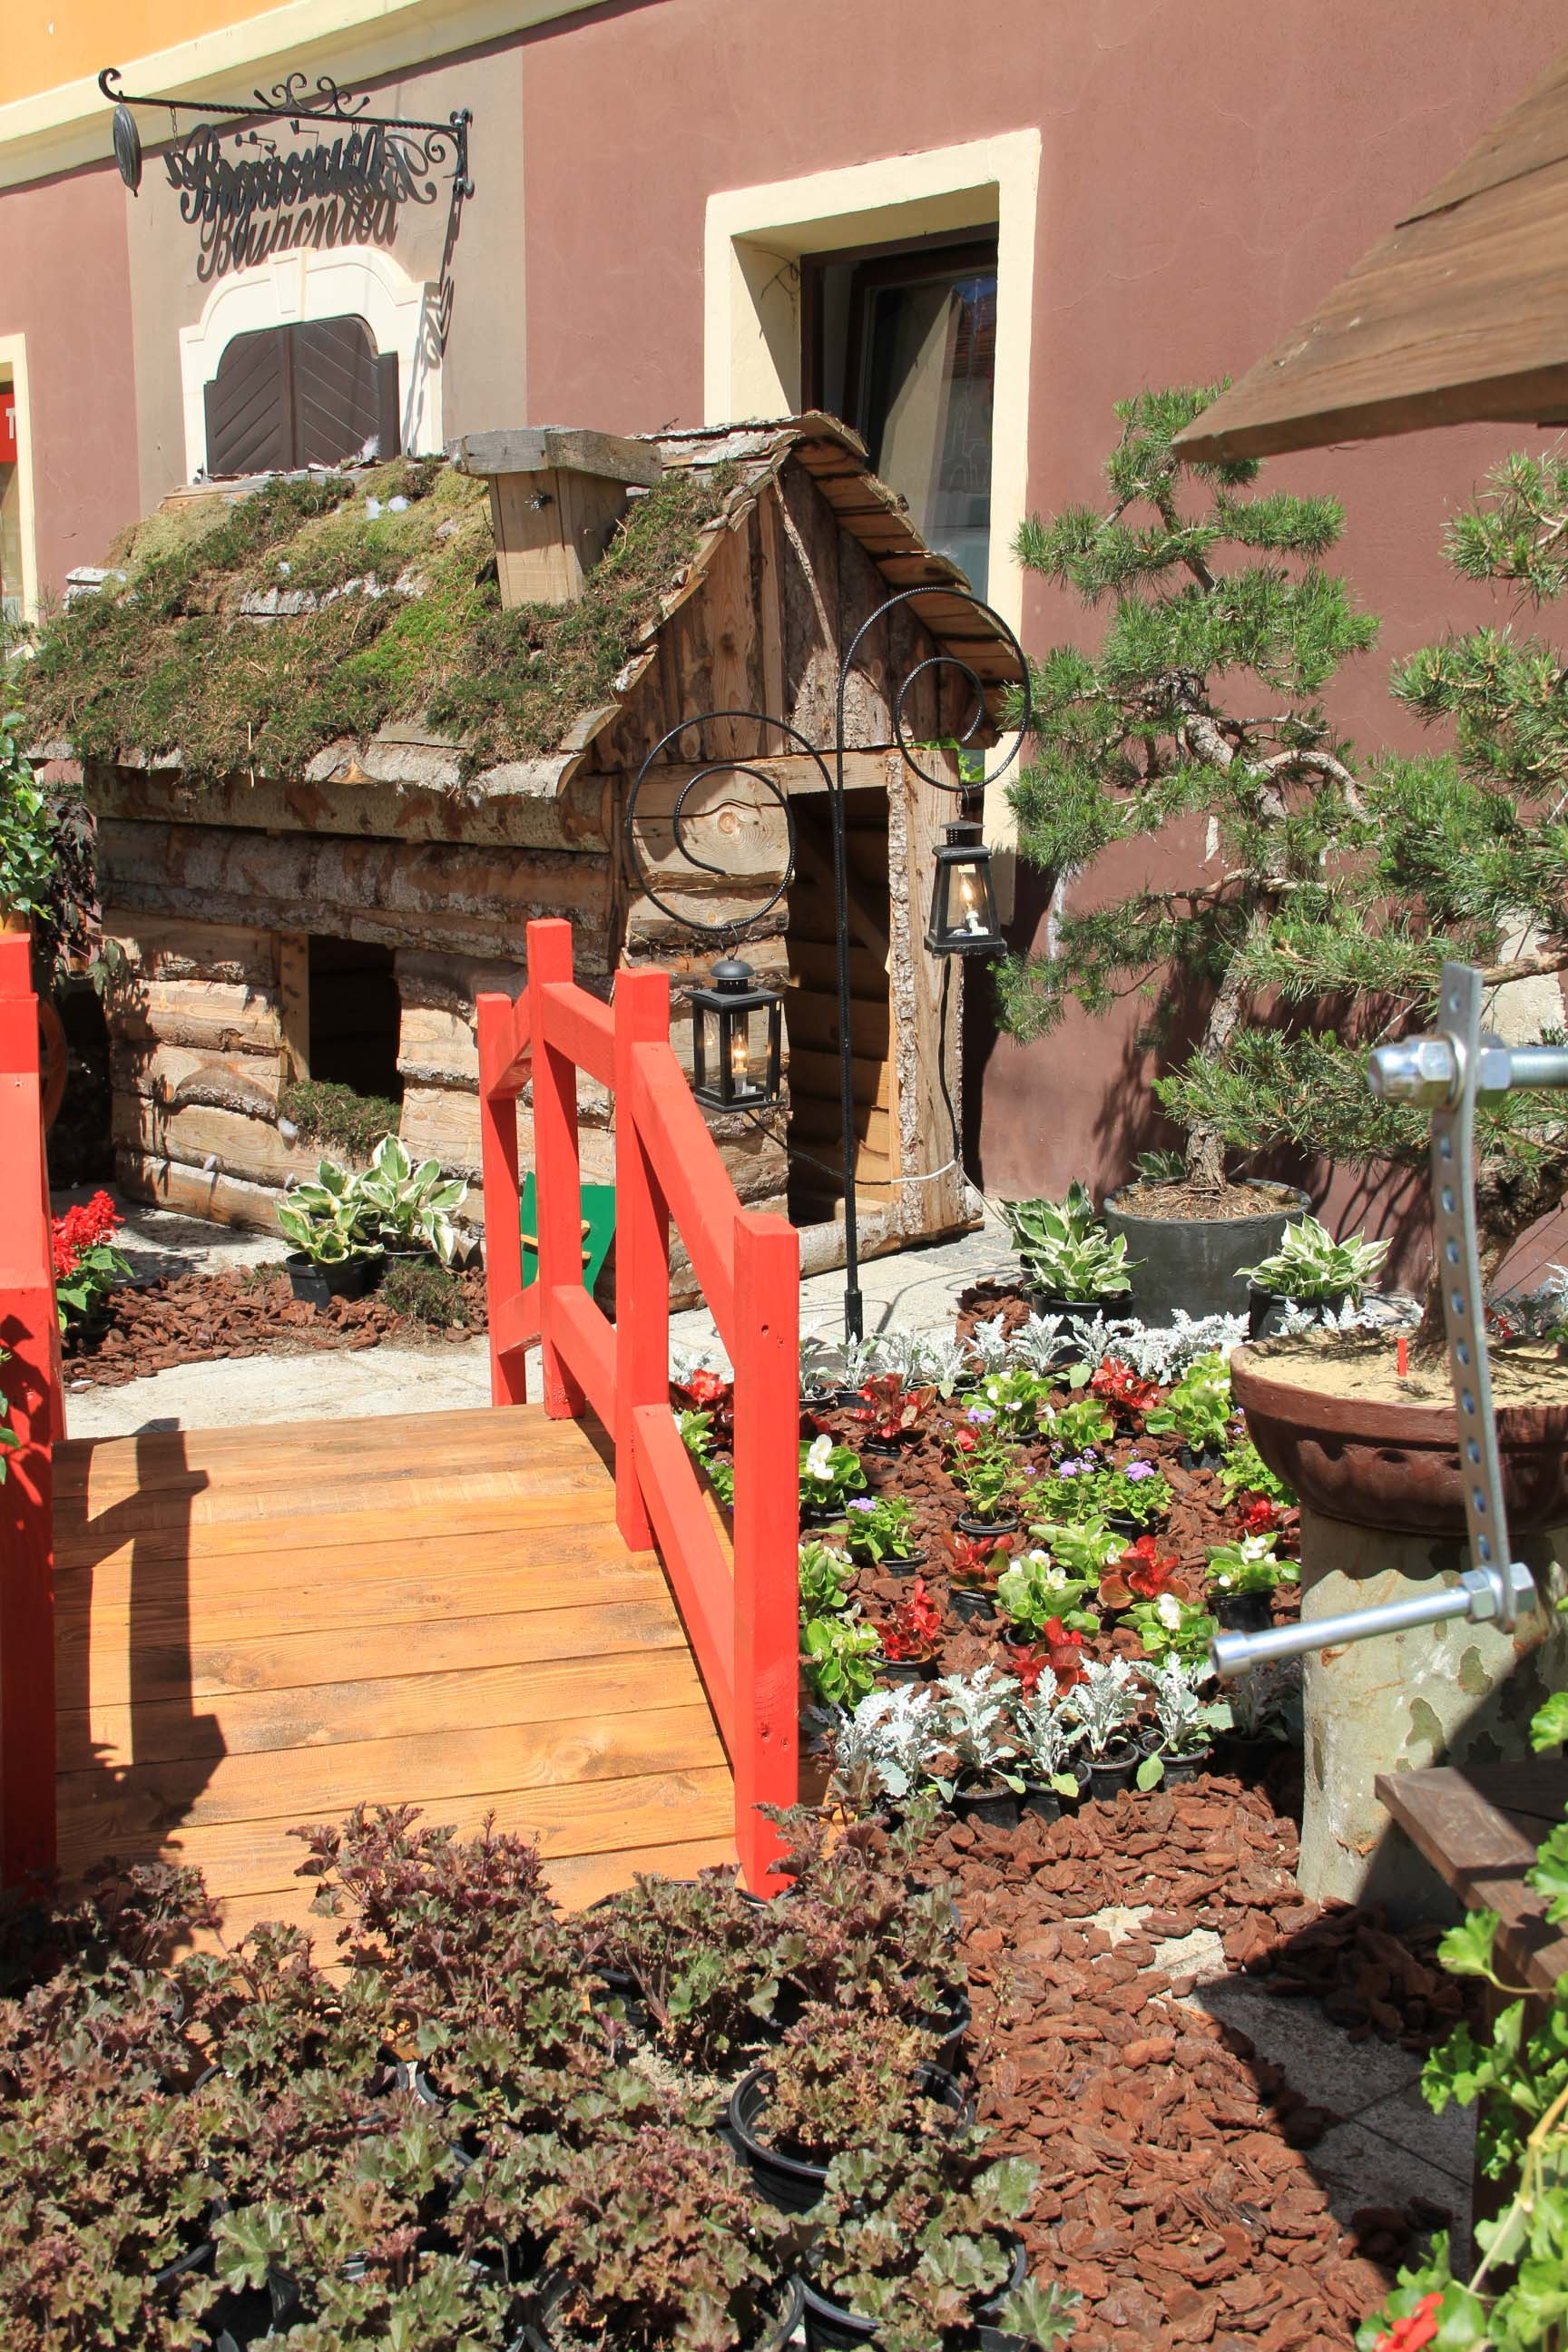 Festival of Flowers, Strawberries and Handicrafts | Croatia4me ...